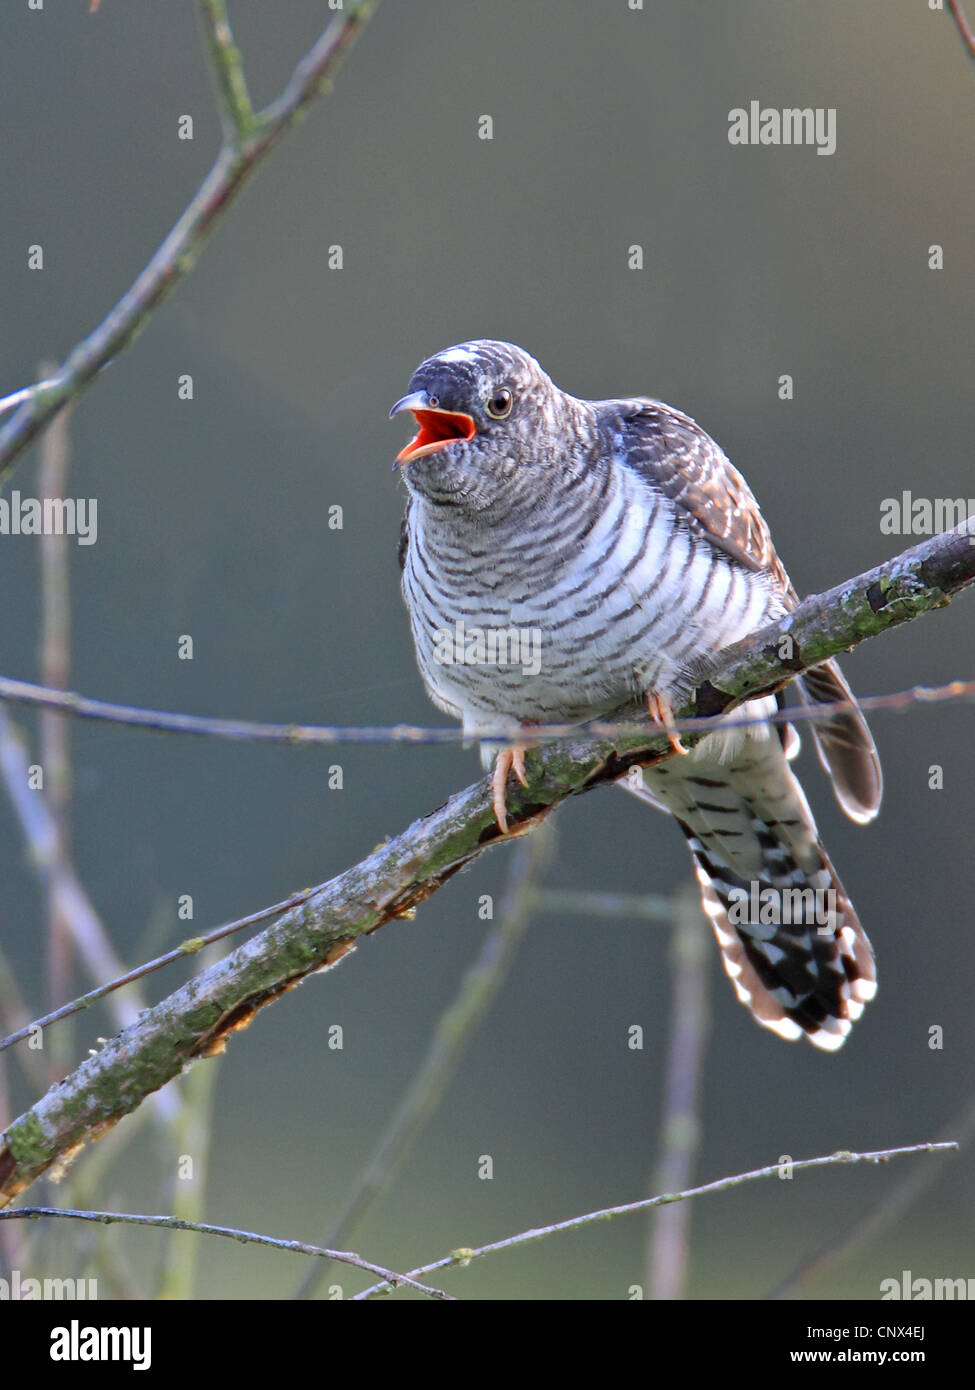 Eurasian cuckoo (Cuculus canorus), squeeker sitting on a branch calling, Netherlands, Flevoland - Stock Image